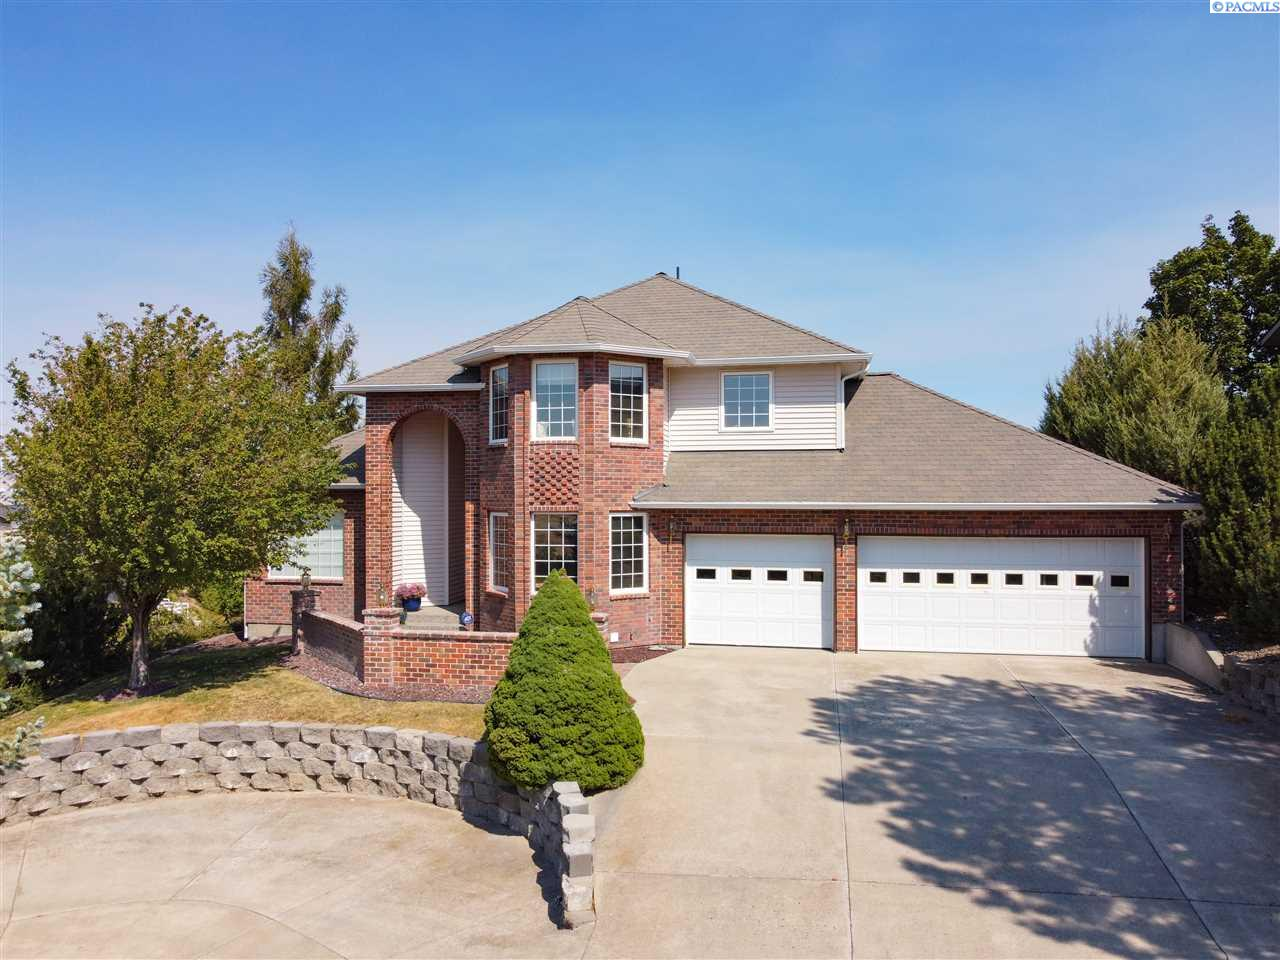 Single Family Homes for Sale at 1535 SW Wadleigh Drive Pullman, Washington 99163 United States